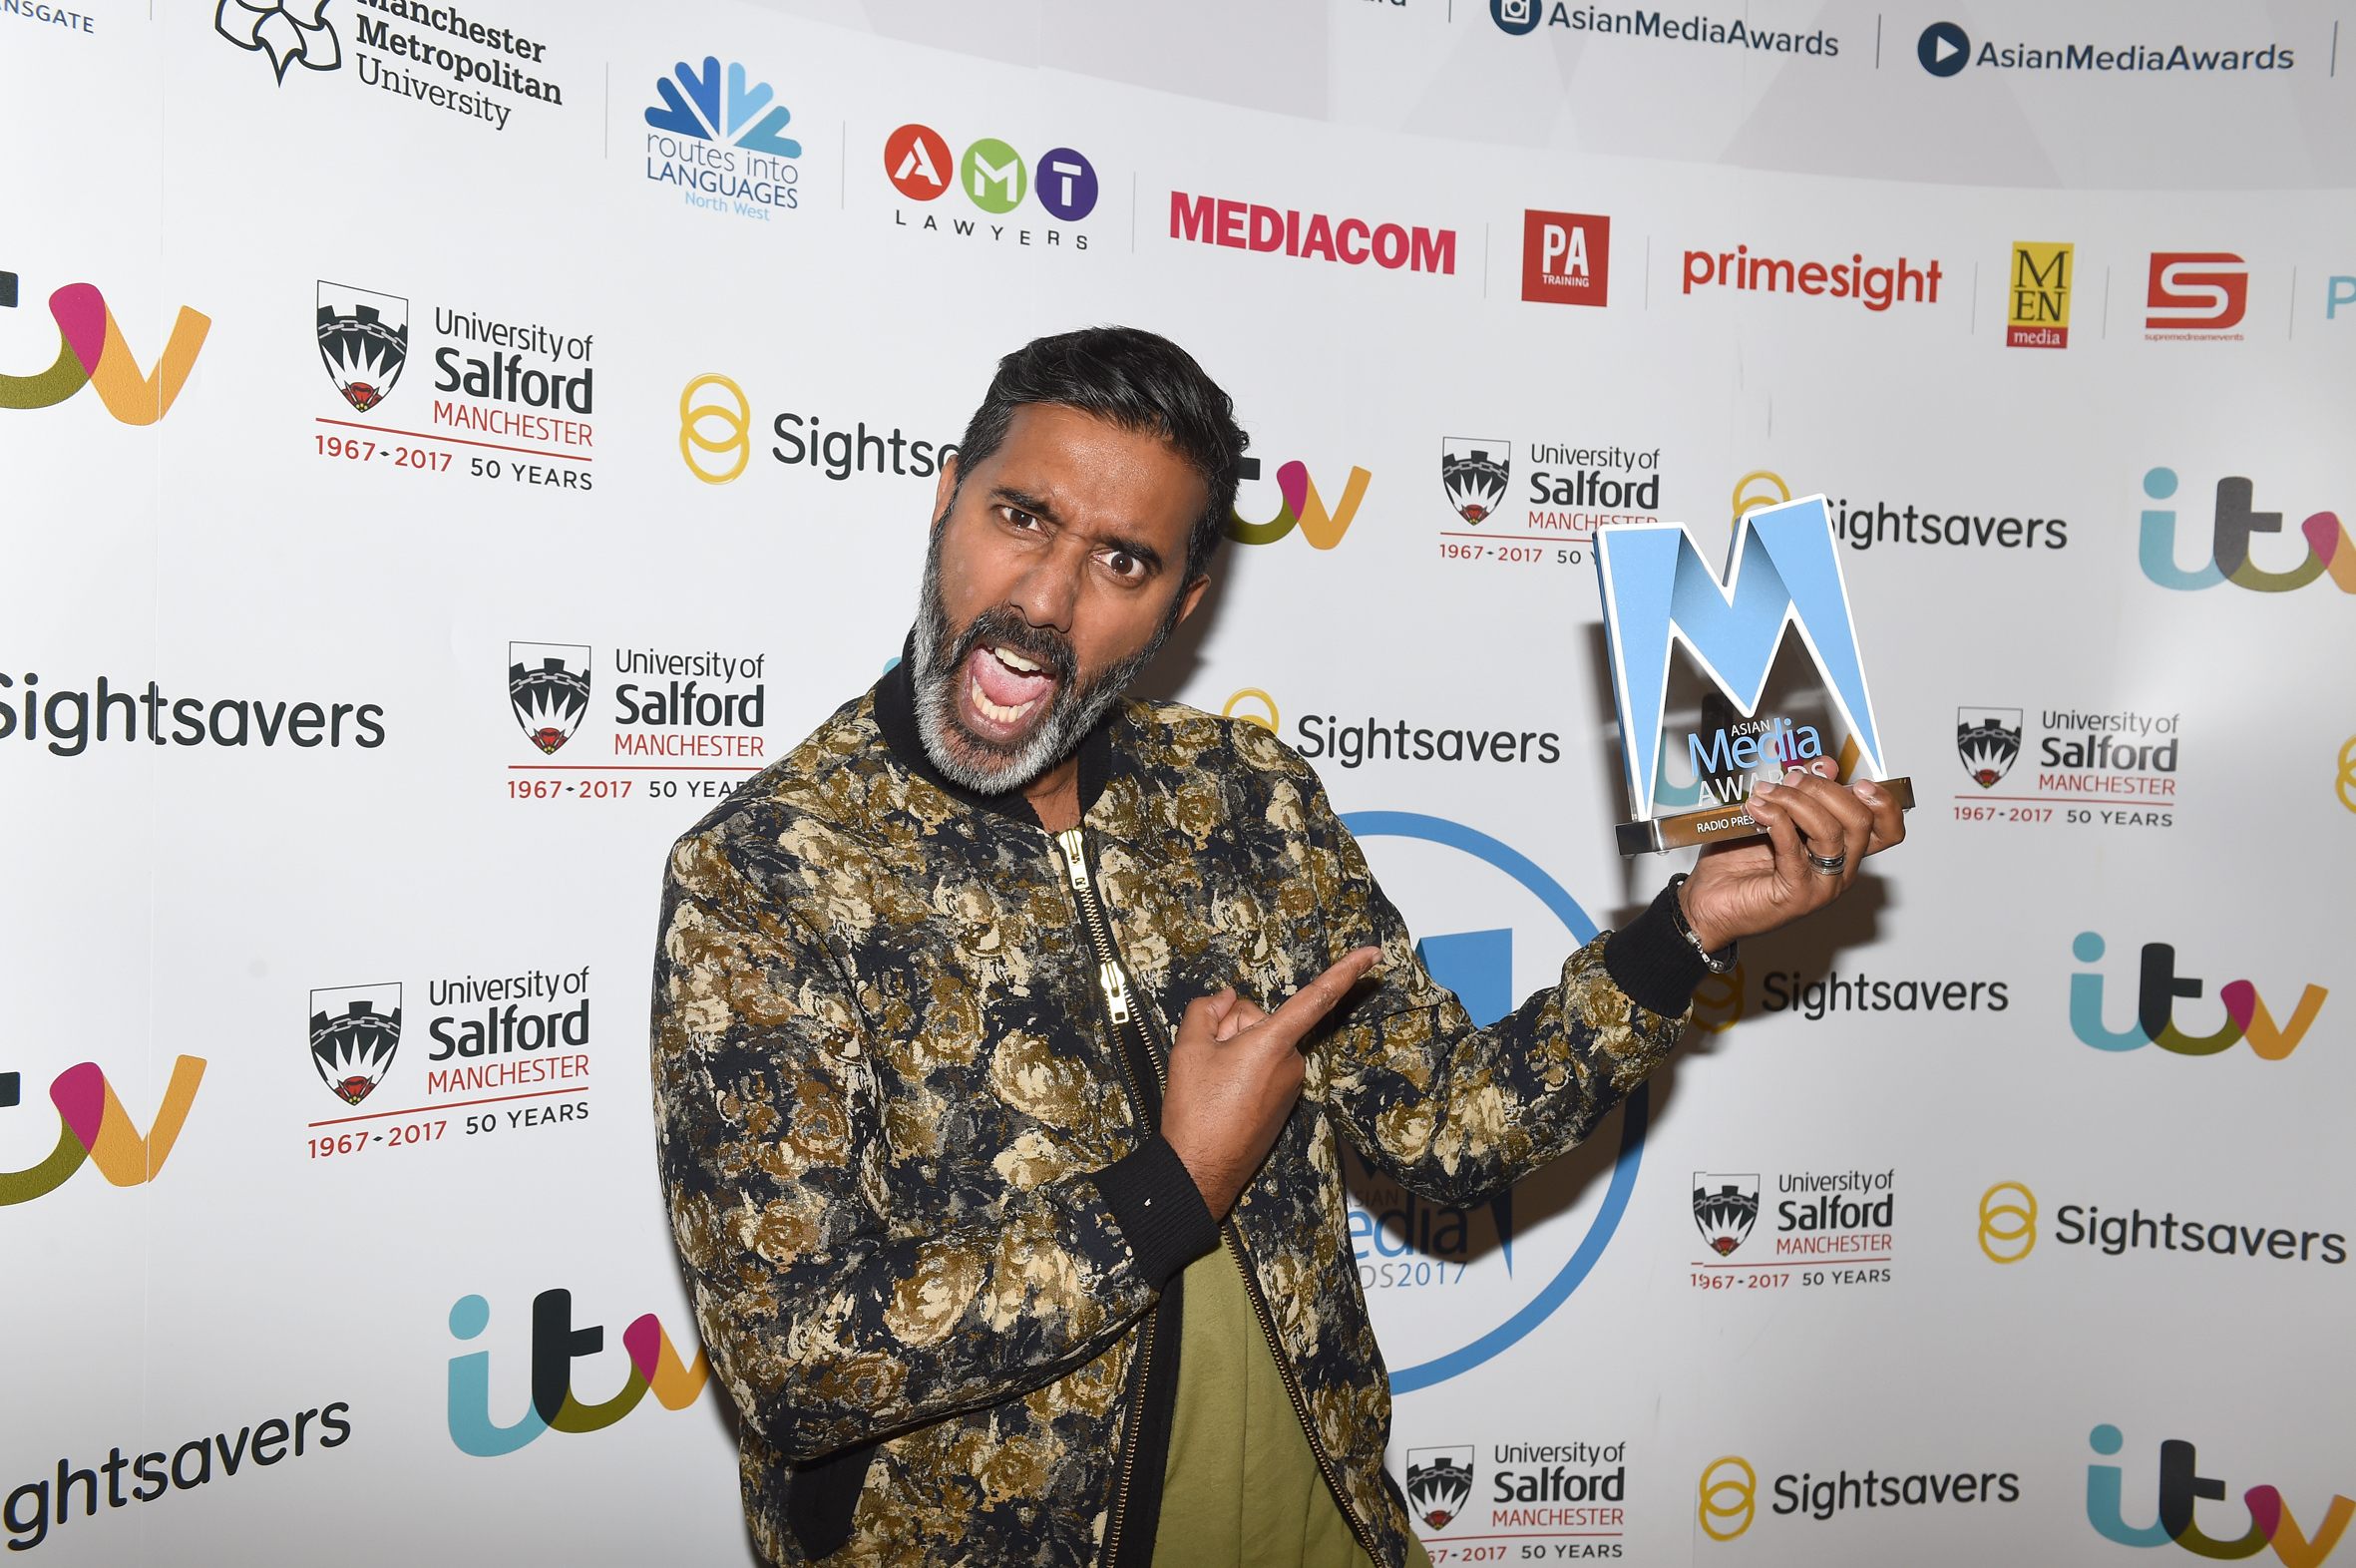 Nihal is Radio Presenter of the Year 2017